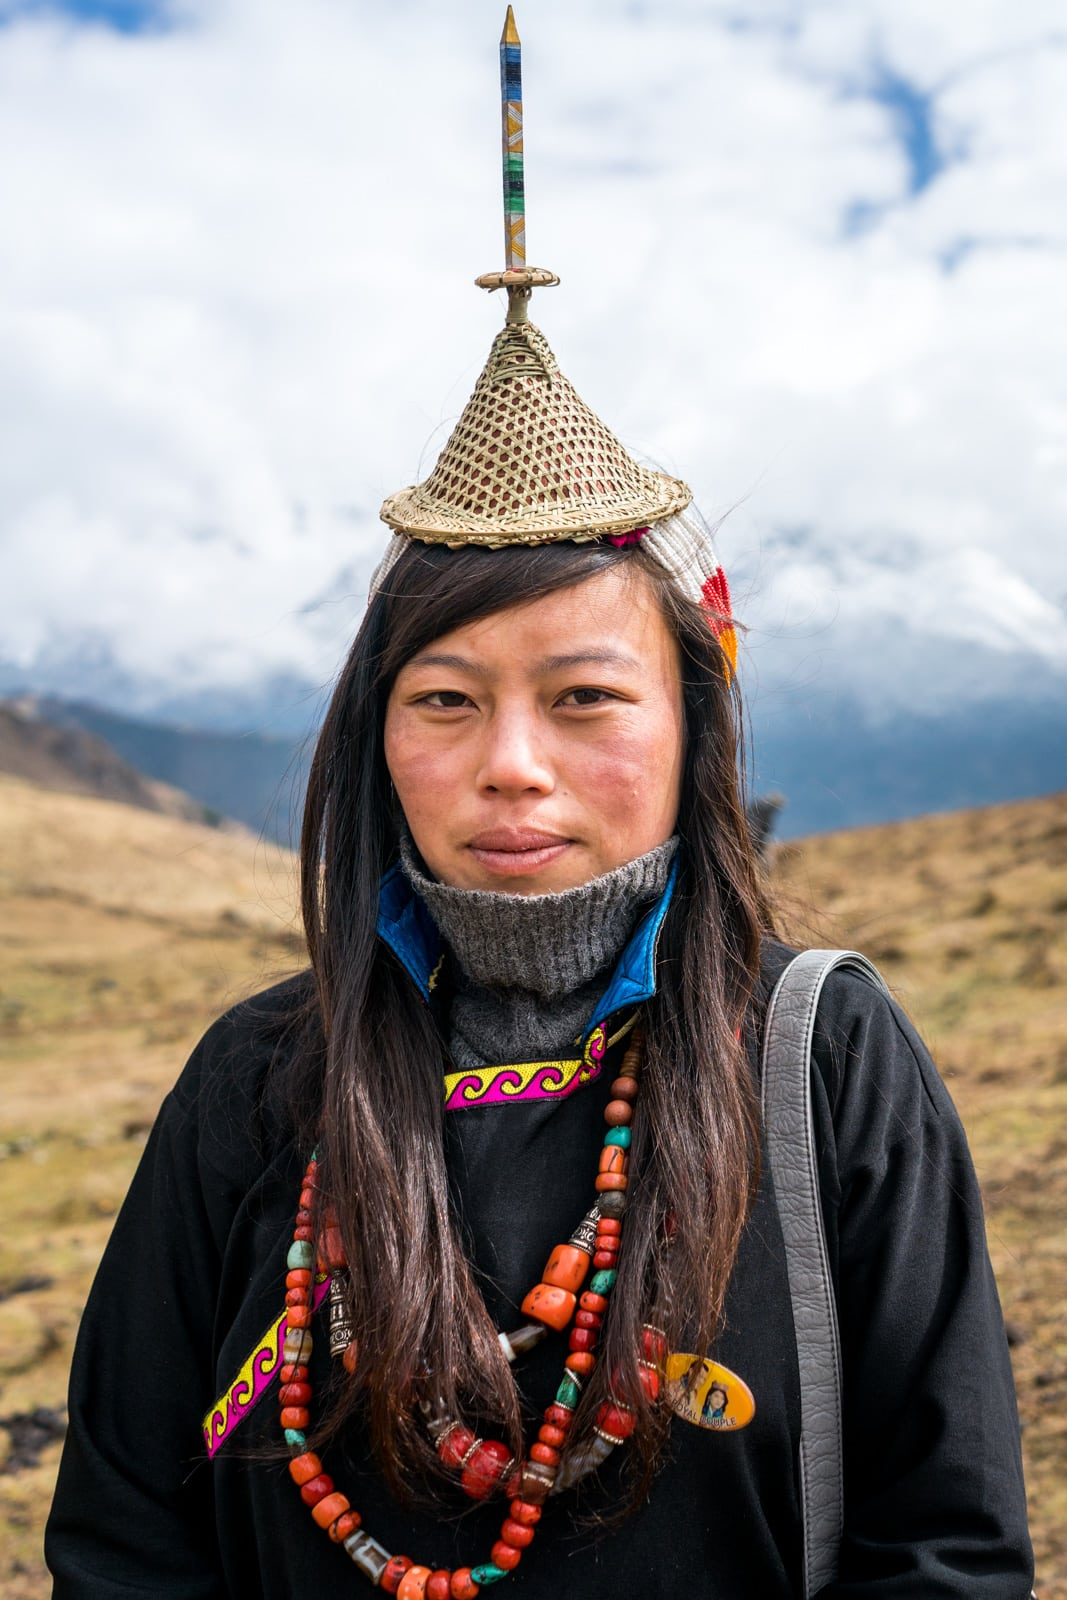 Portrait of a Layap woman in her traditional headdress and clothes at the Royal Highlander Festival in Bhutan. The festival, filled with local people in their best traditional Bhutanese dress, is a dream for anyone interested in Bhutan photography!